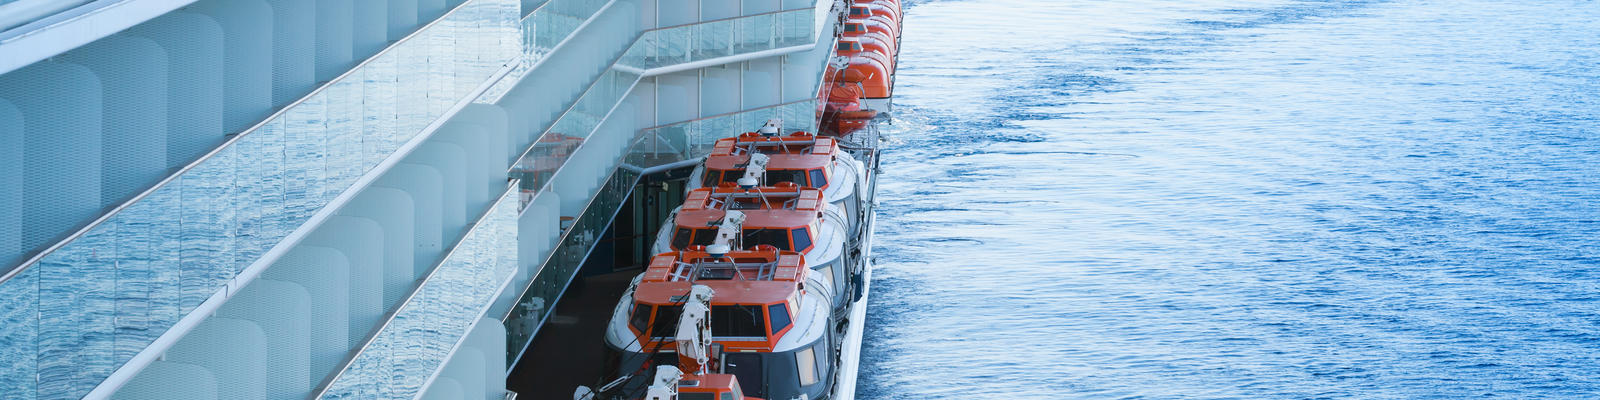 Jones Act and PVSA: What's the Difference, and How Do They Affect My Cruise? (Photo: Evannovostro/Shutterstock)